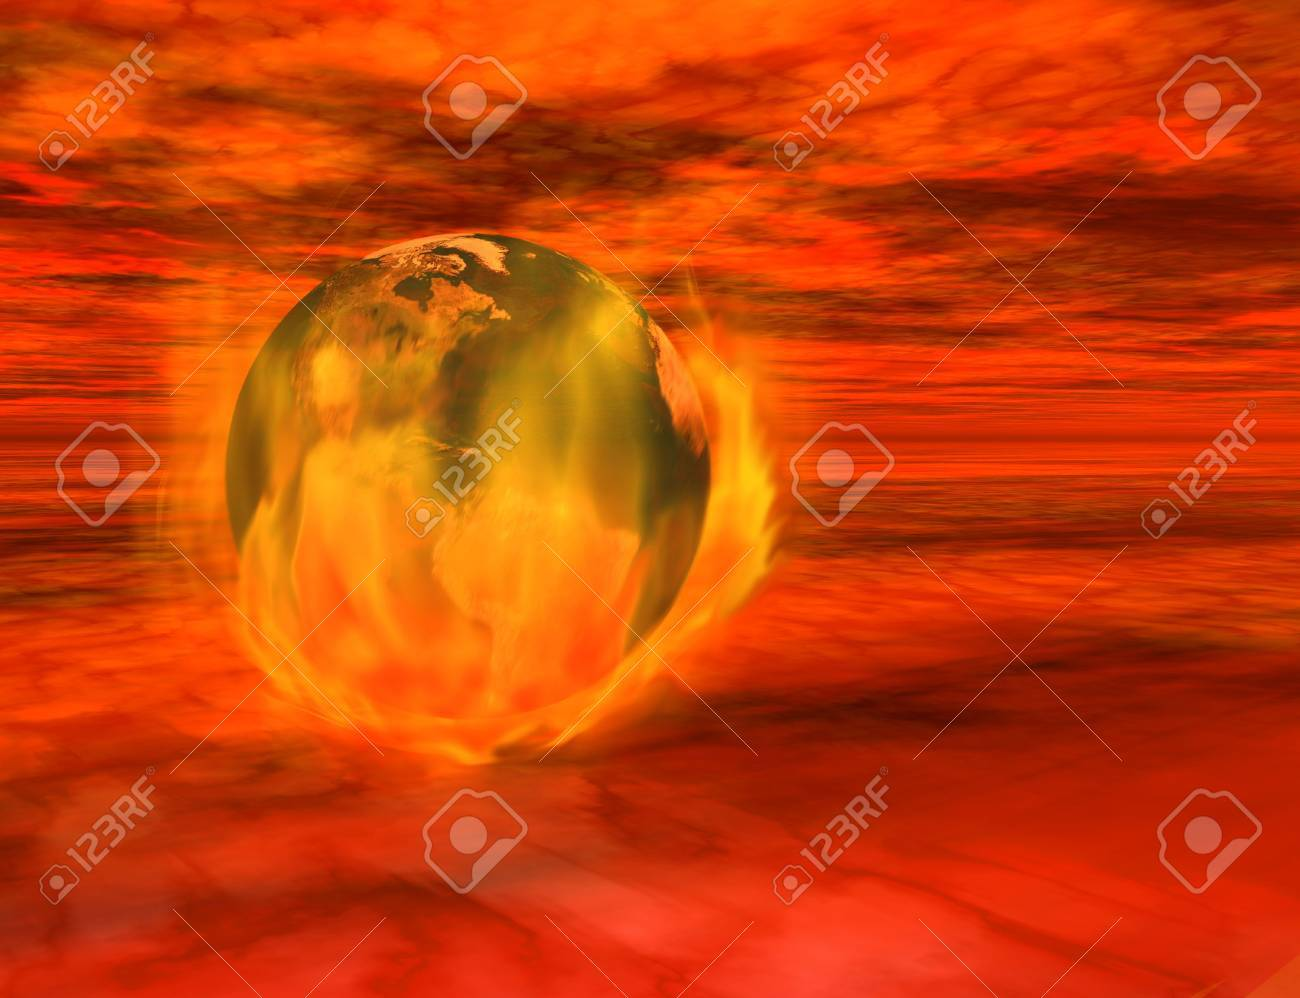 The end of the world - 3d render of the Earth on fire, floating among menacing red clouds. Stock Photo - 2286615